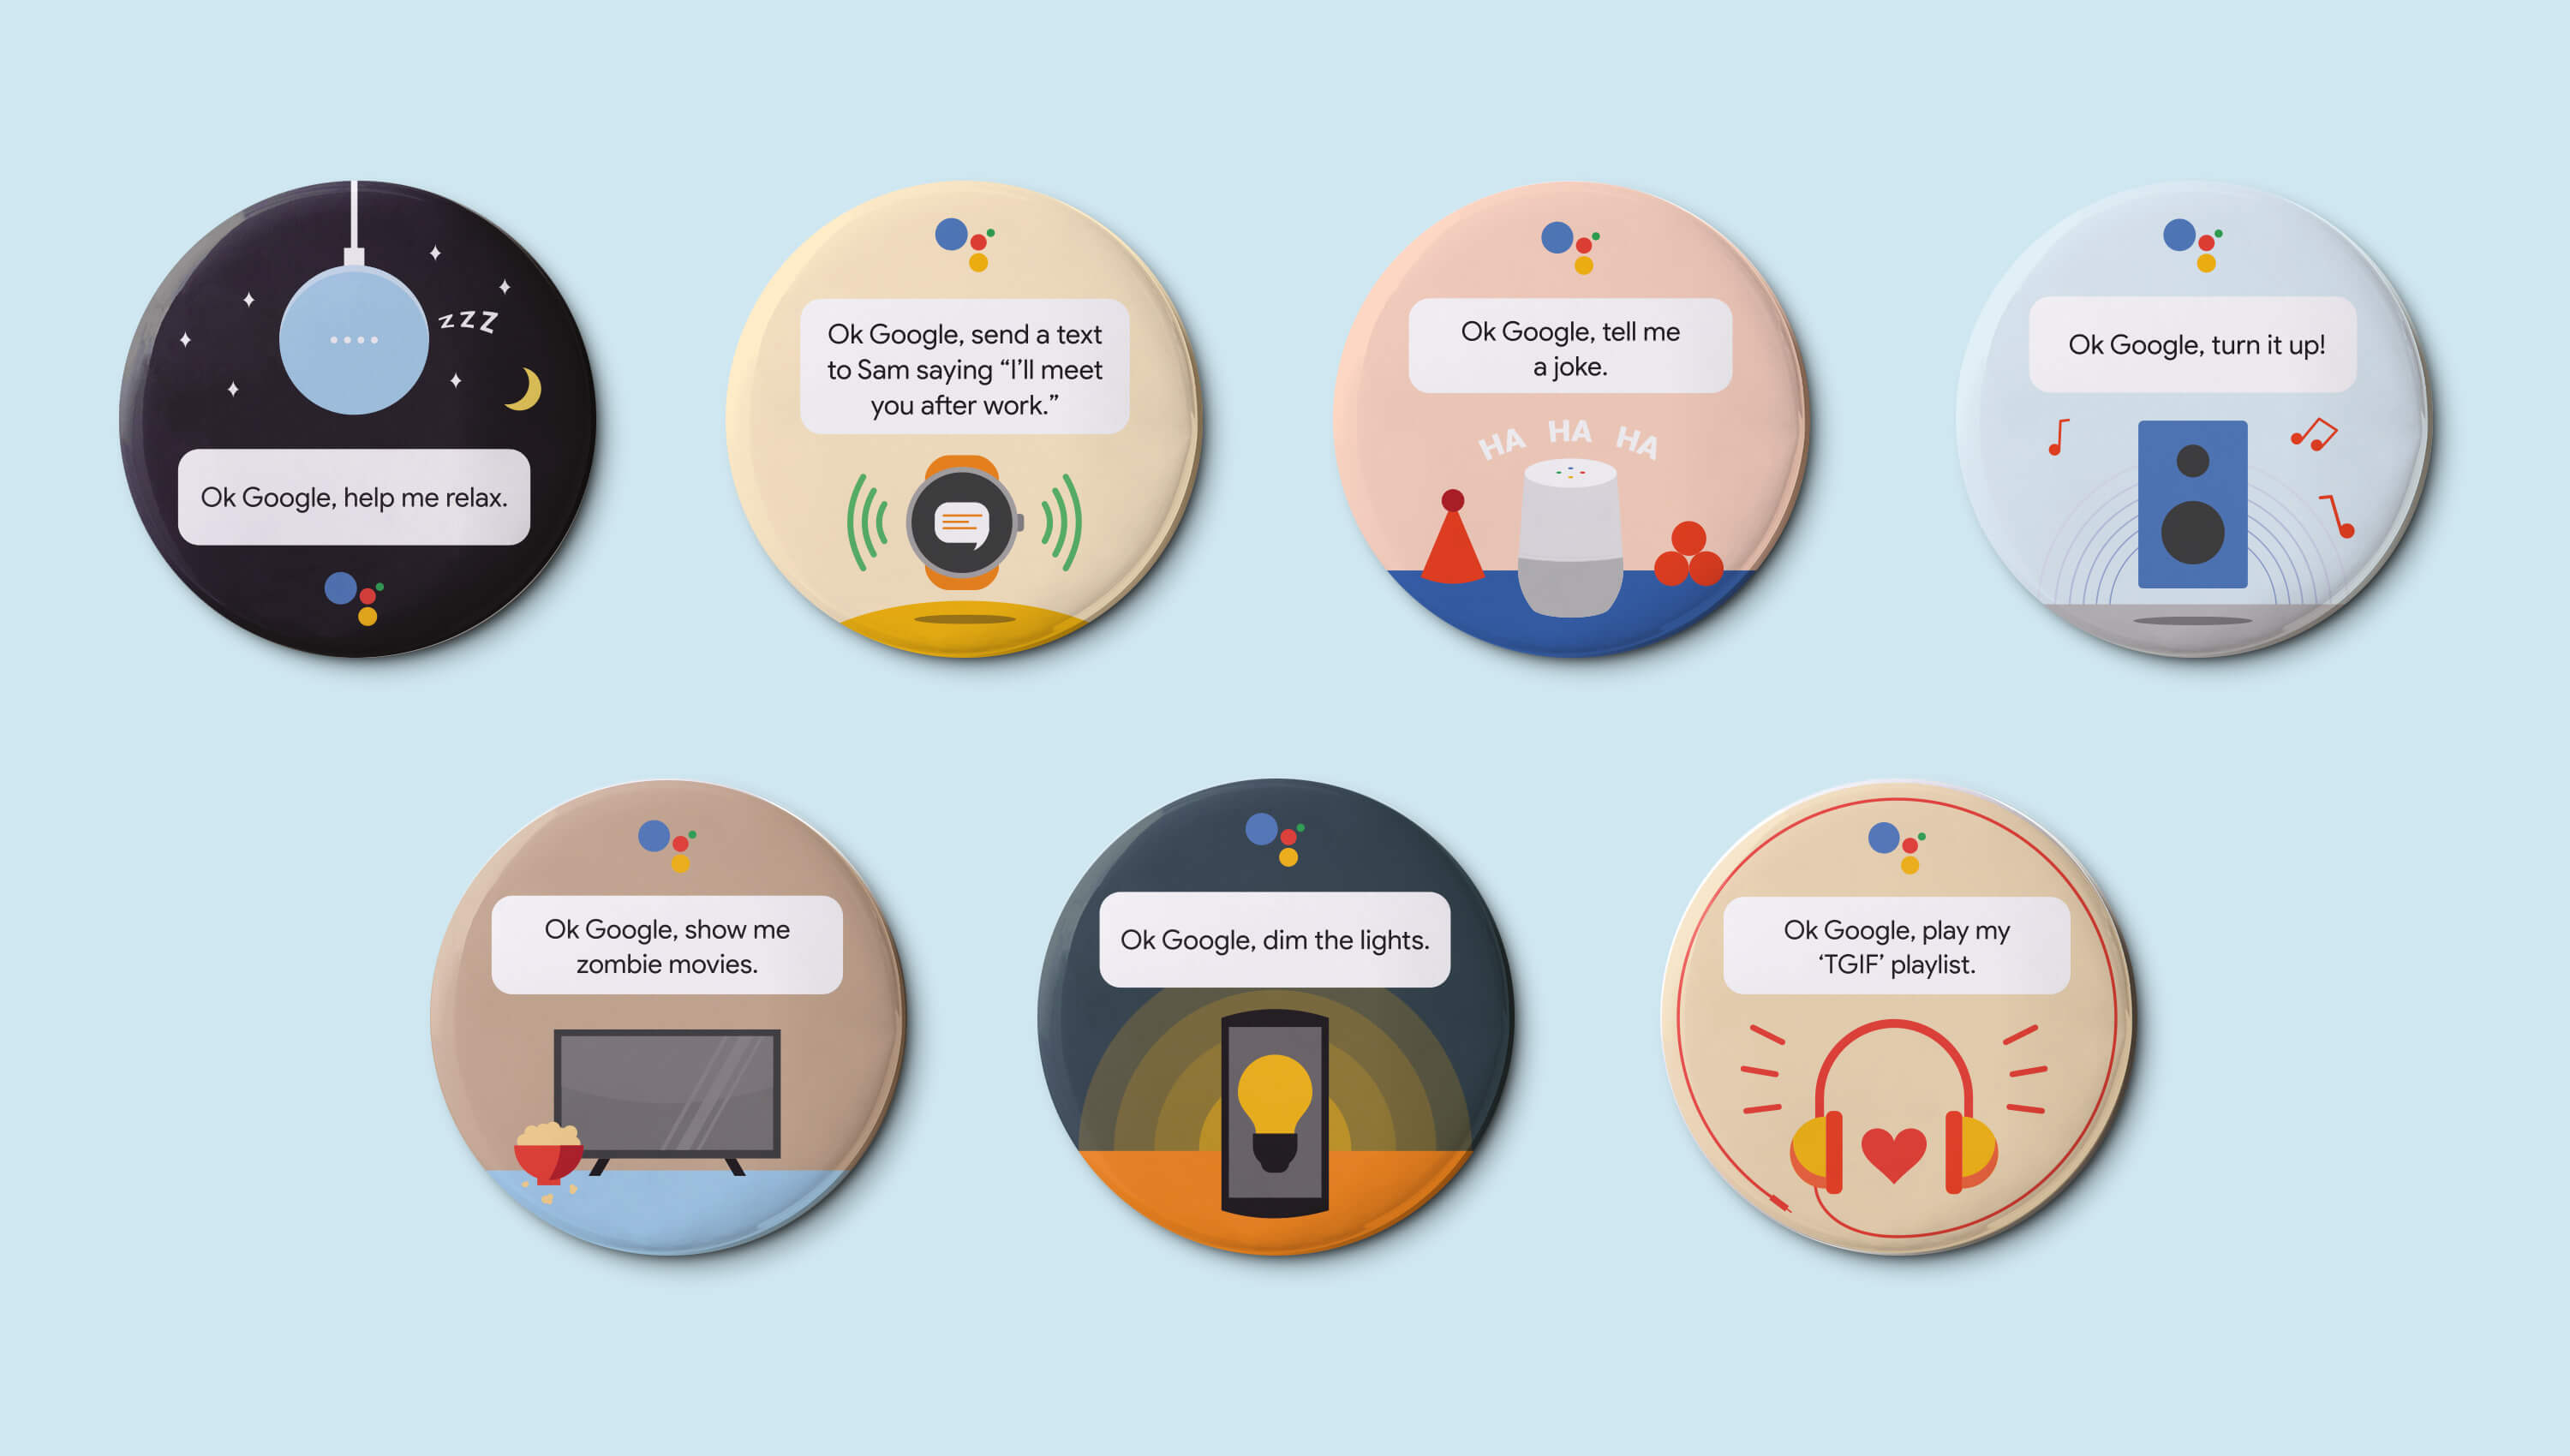 Google pins with illustration for common Google Home queries